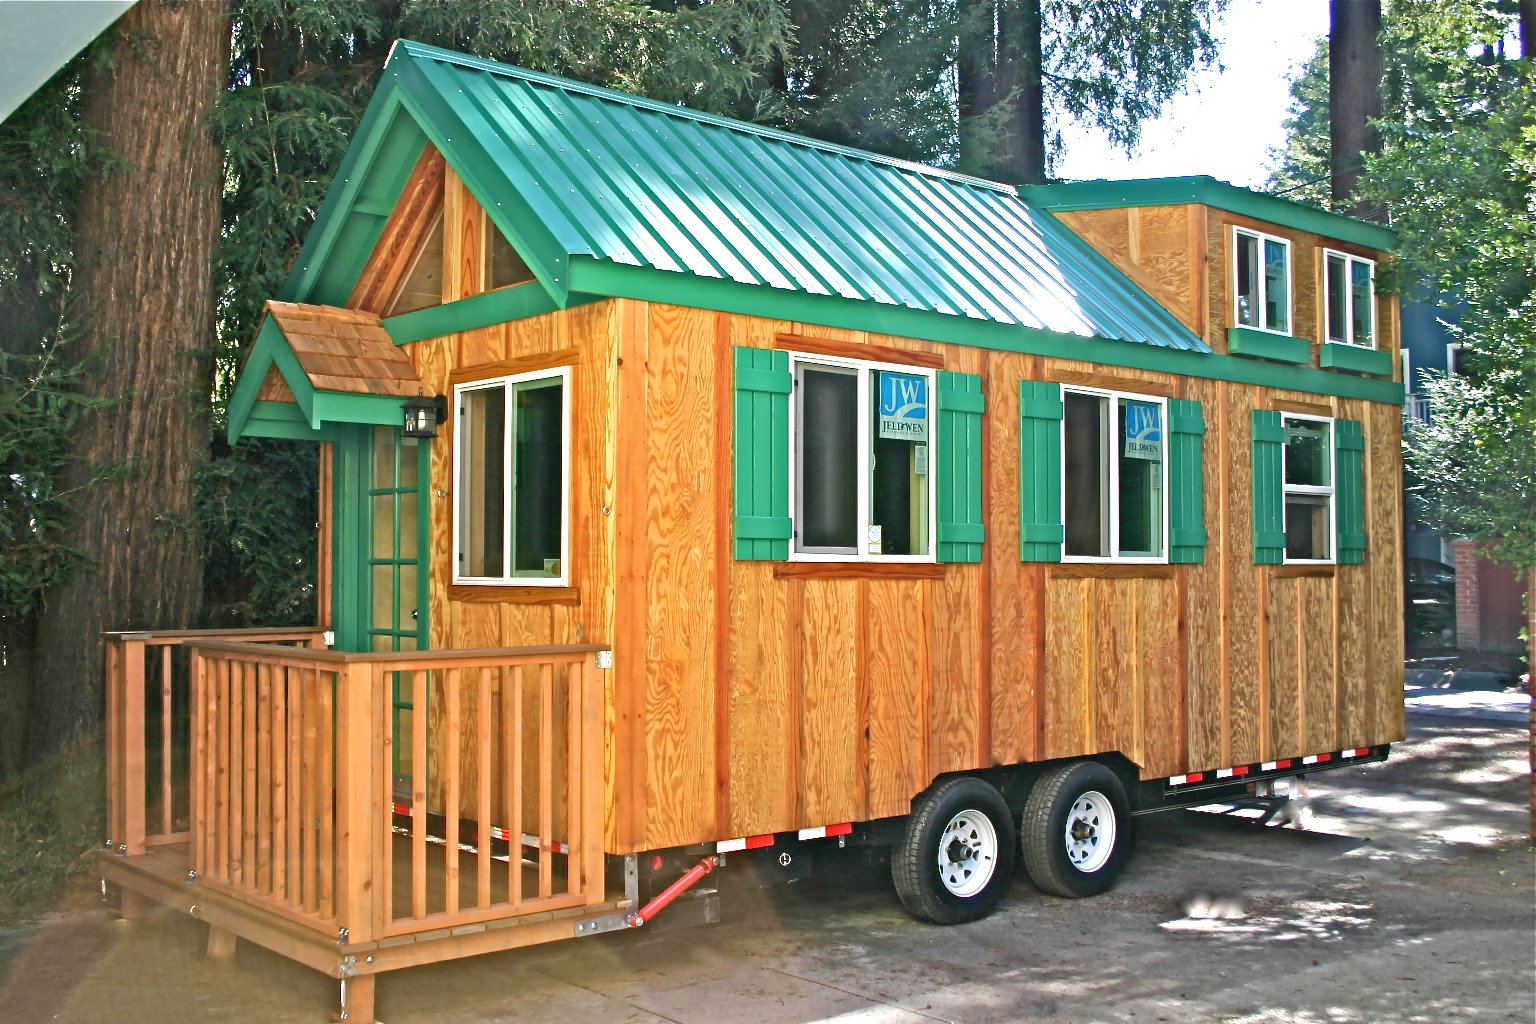 tiny houses california - Tiny Houses California